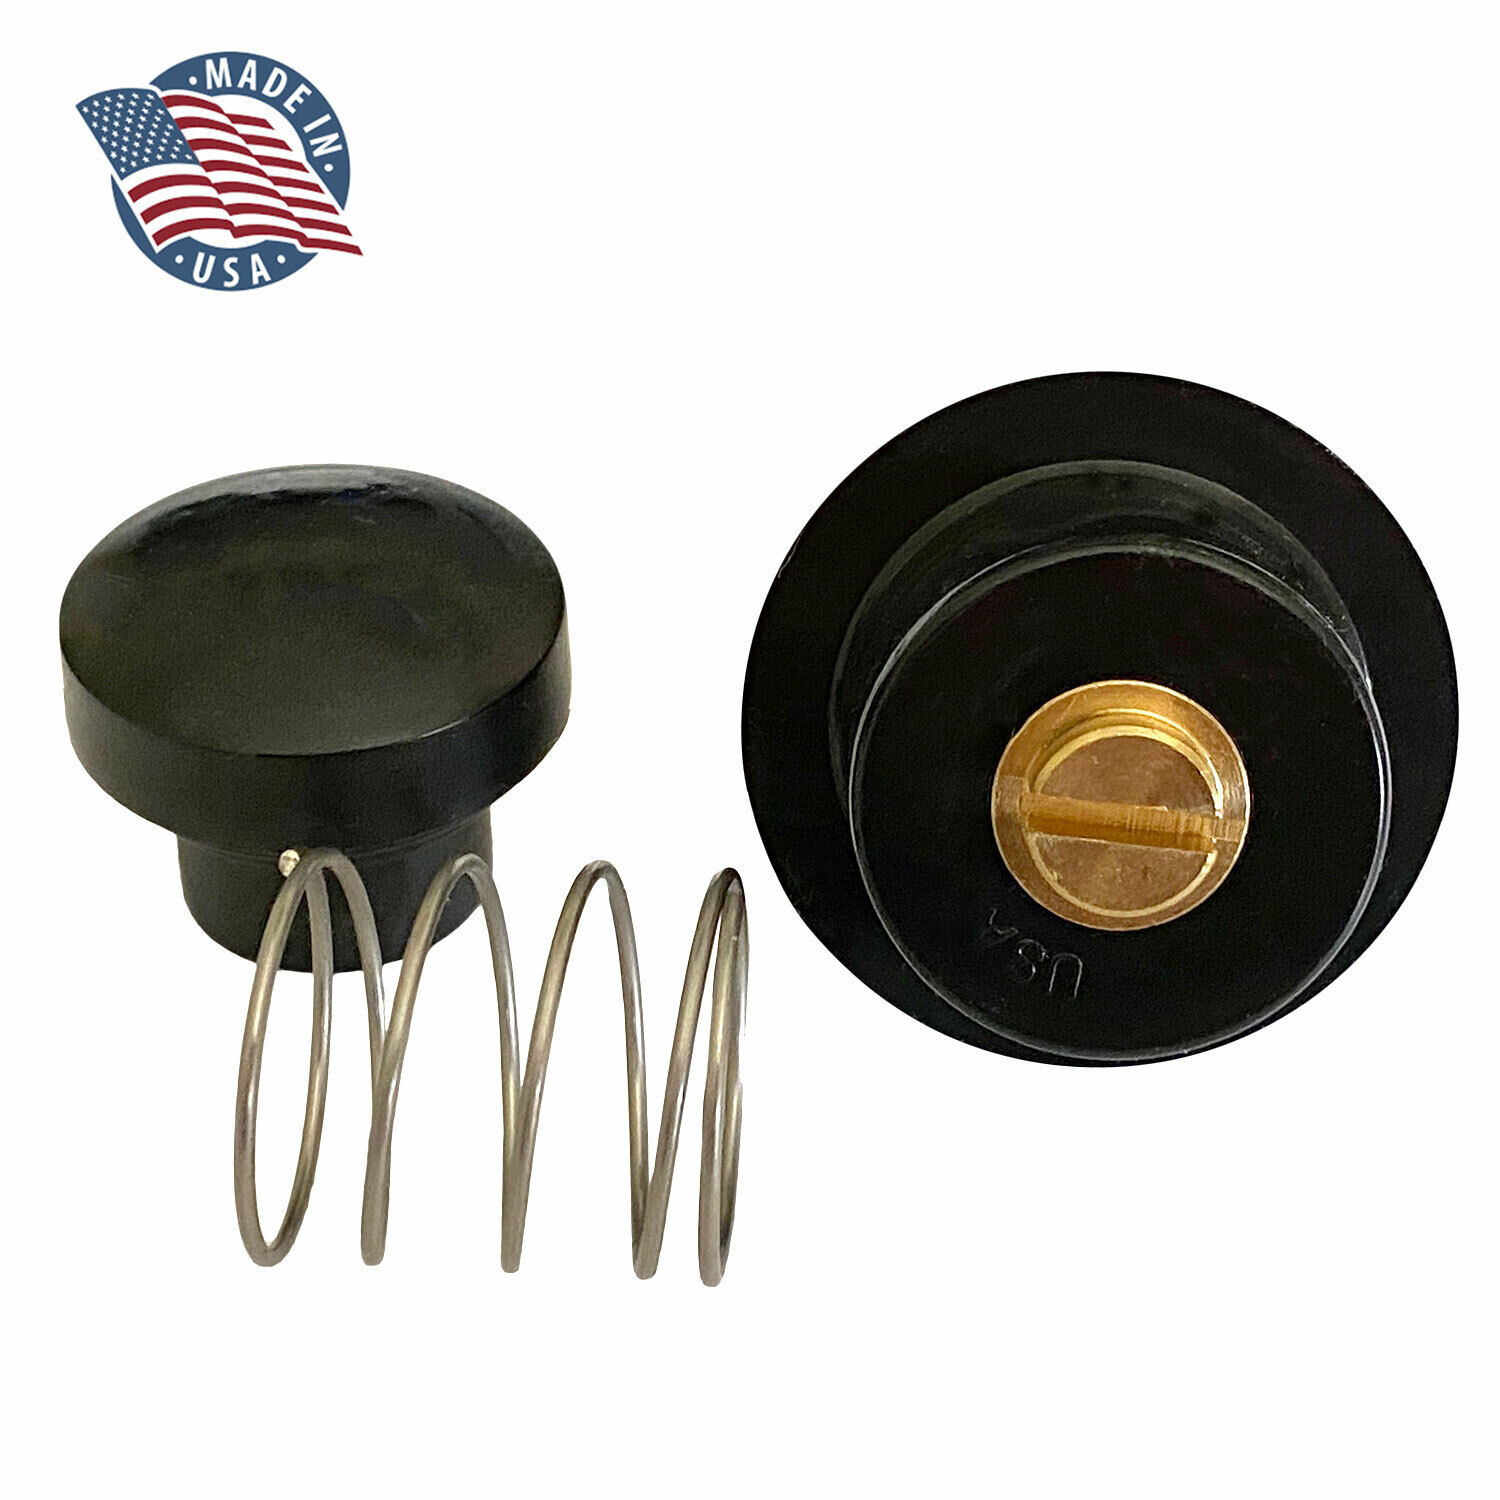 Flushline Replacement for Sloan 3308853 1″ Control Stop A-541-H Repair Kit Home & Garden